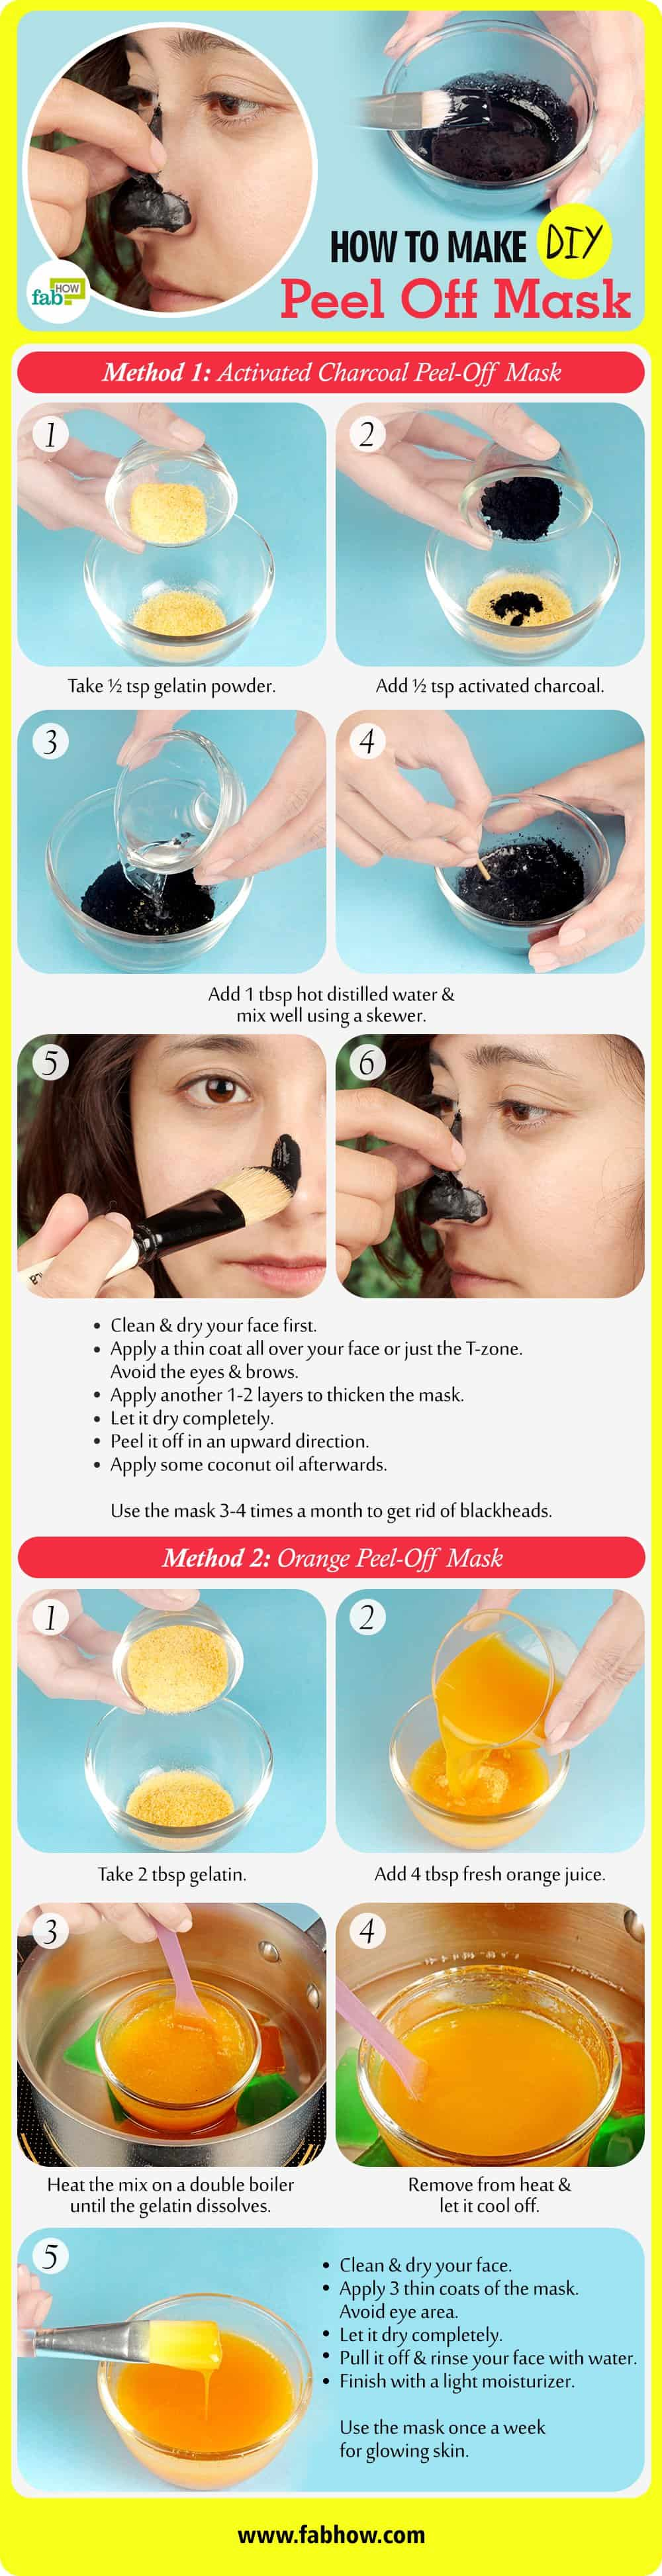 5 best diy peel off facial masks to deep clean pores and blackheads how to make diy peel off masks summary solutioingenieria Images